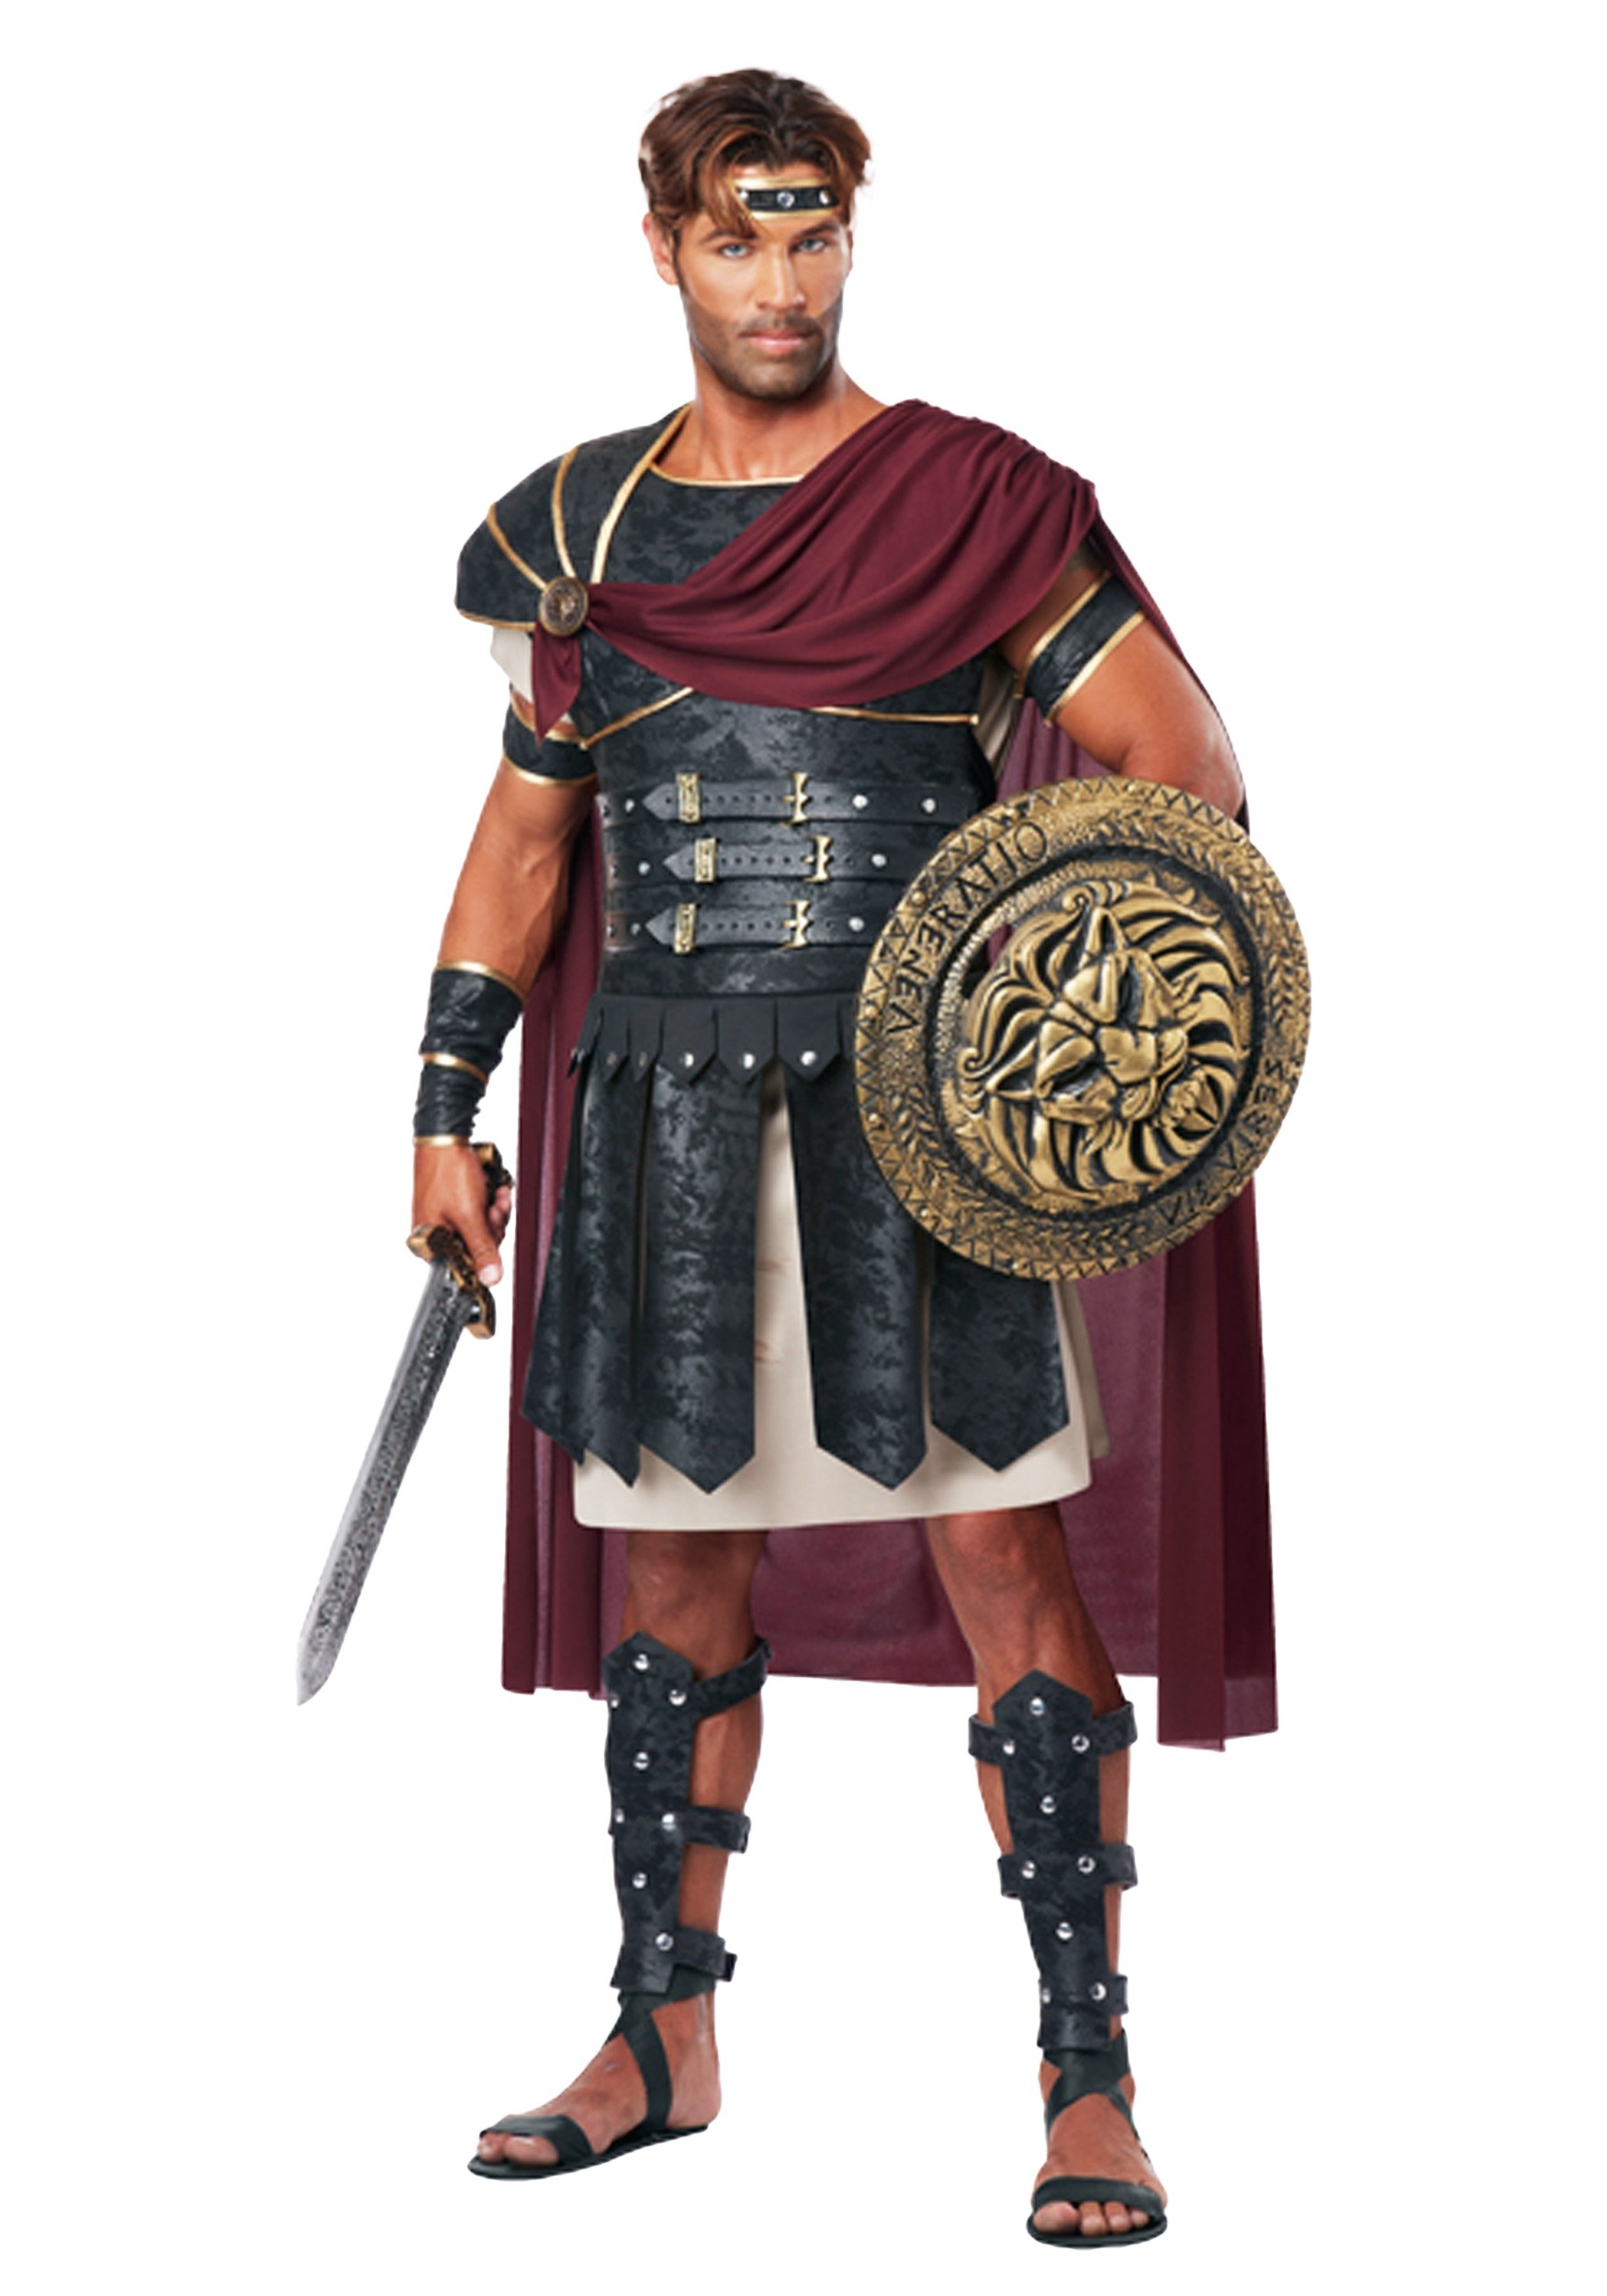 Roman Gladiator Menu0027s Costume  sc 1 st  Fun AU & Roman Gladiator Costume for Men